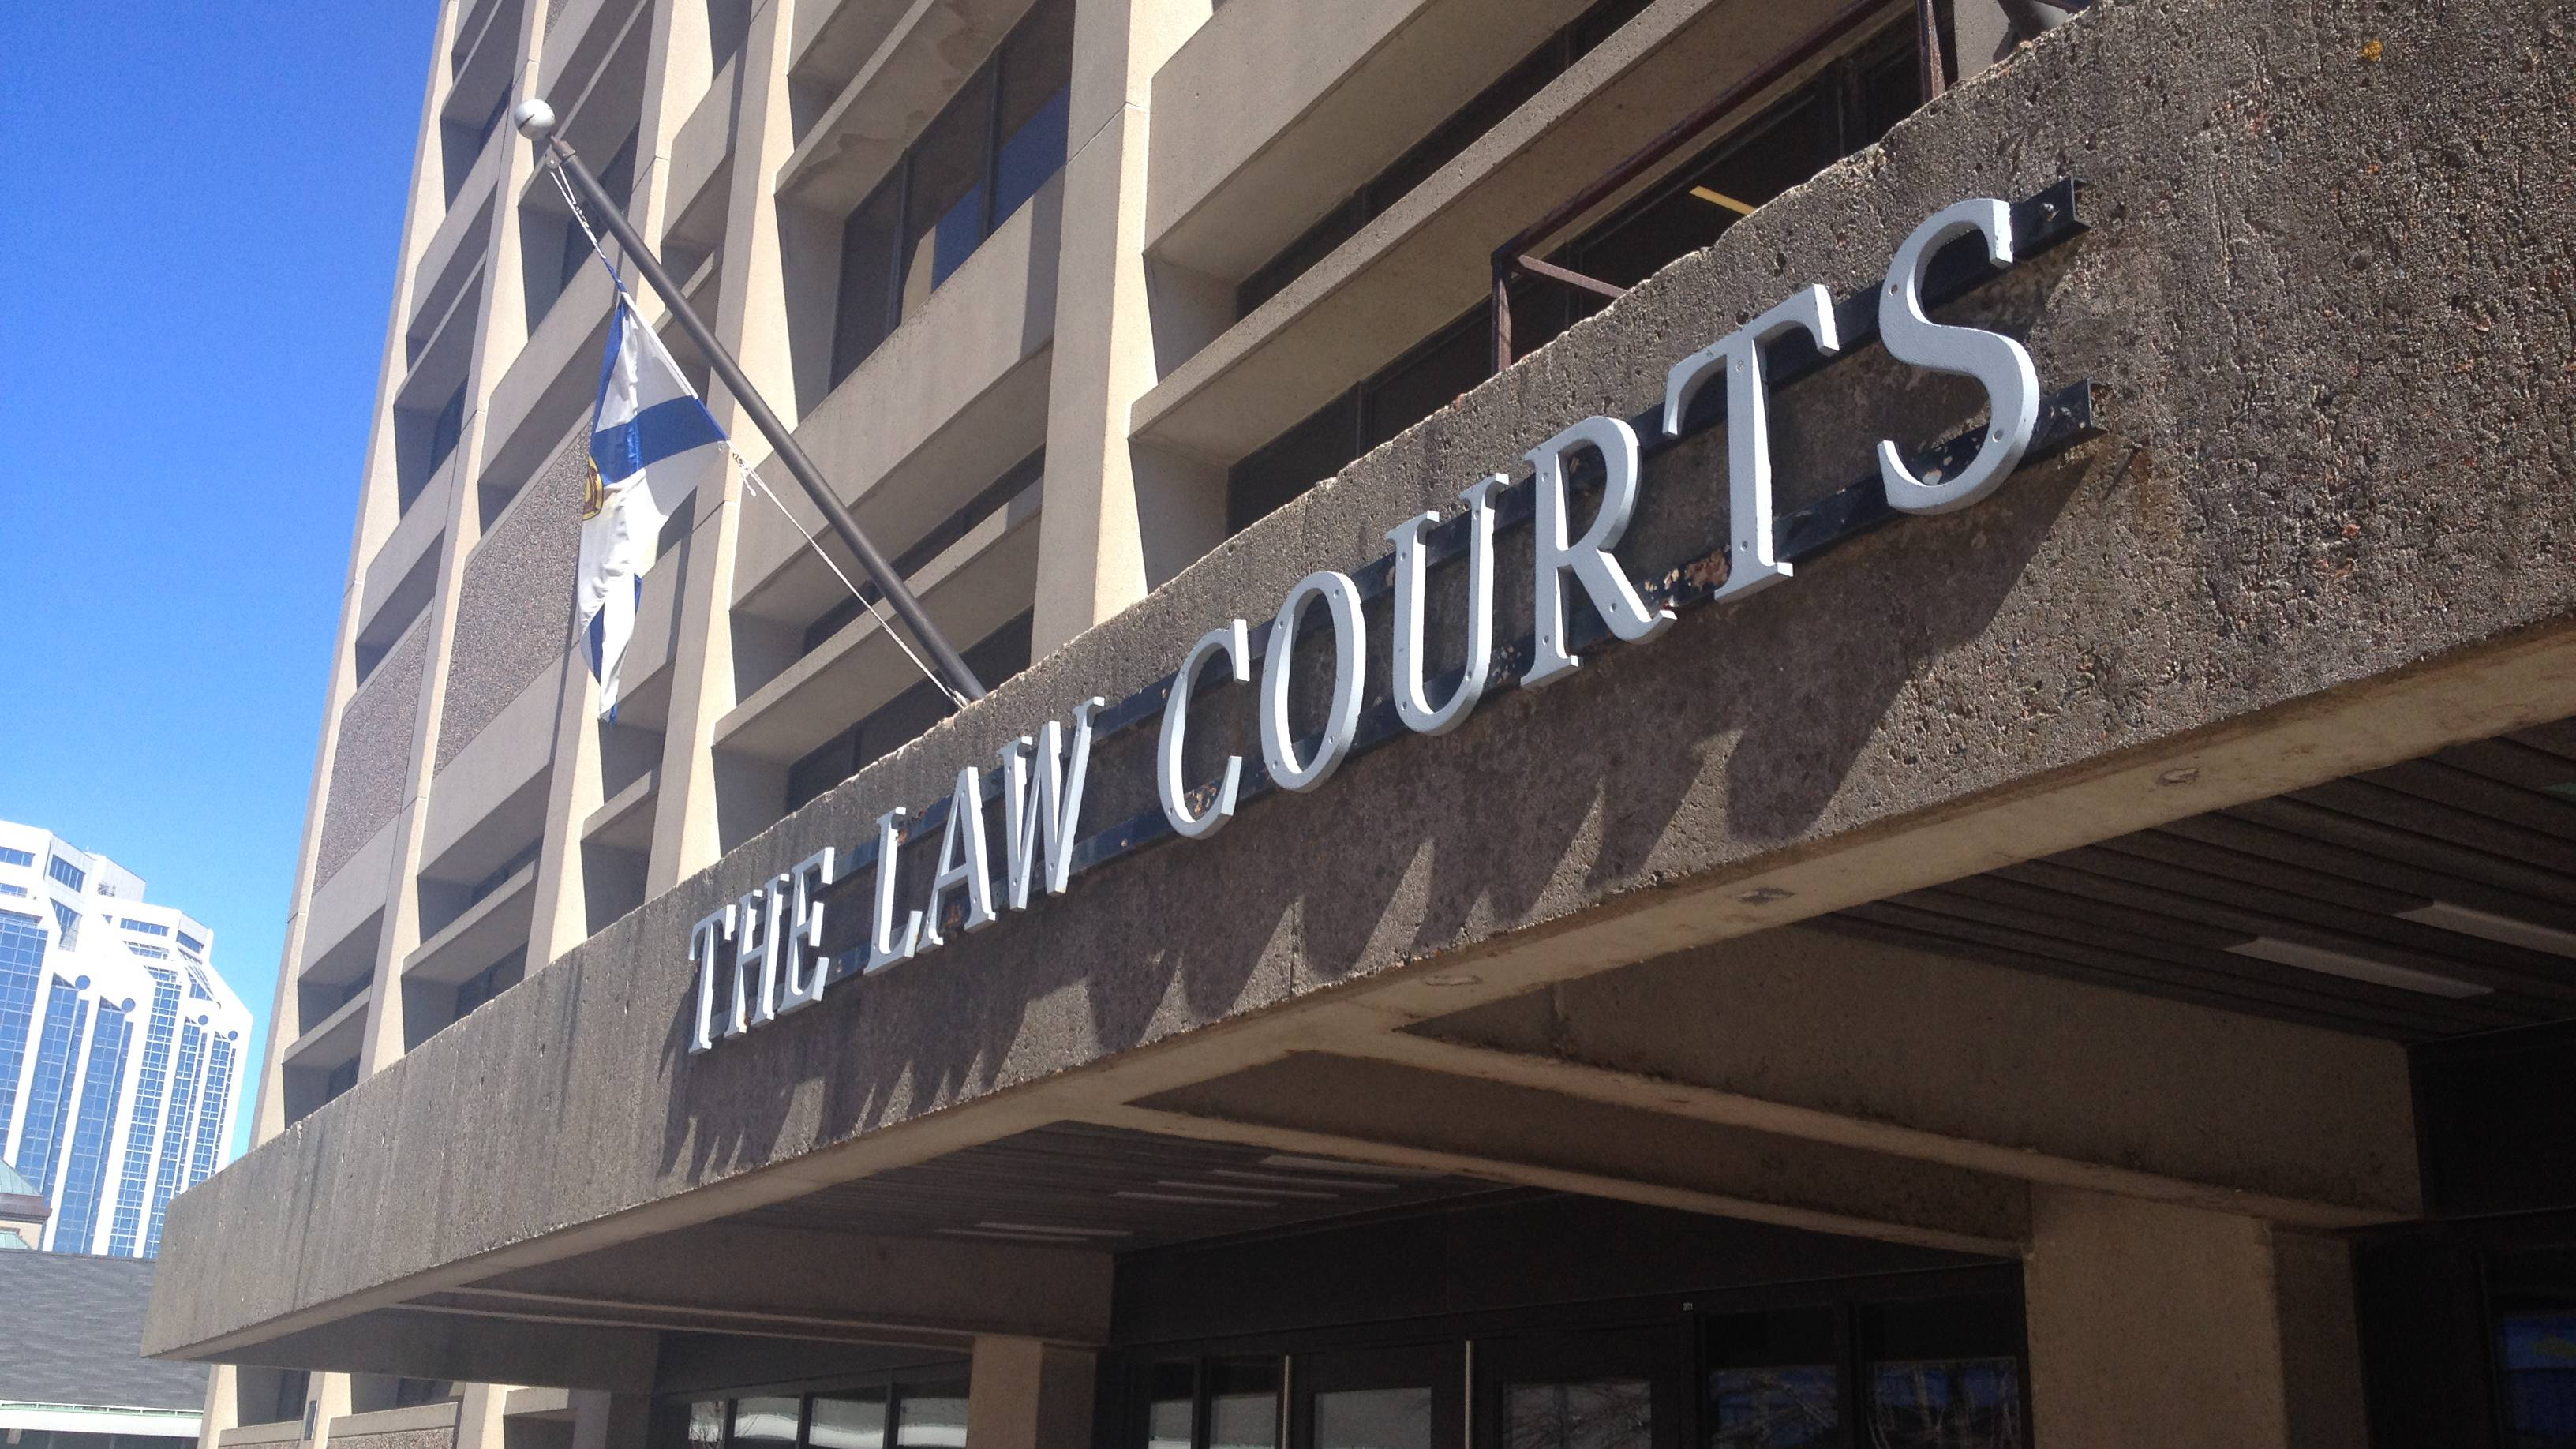 The trial is being held at the Supreme Court of Nova Scotia in Halifax